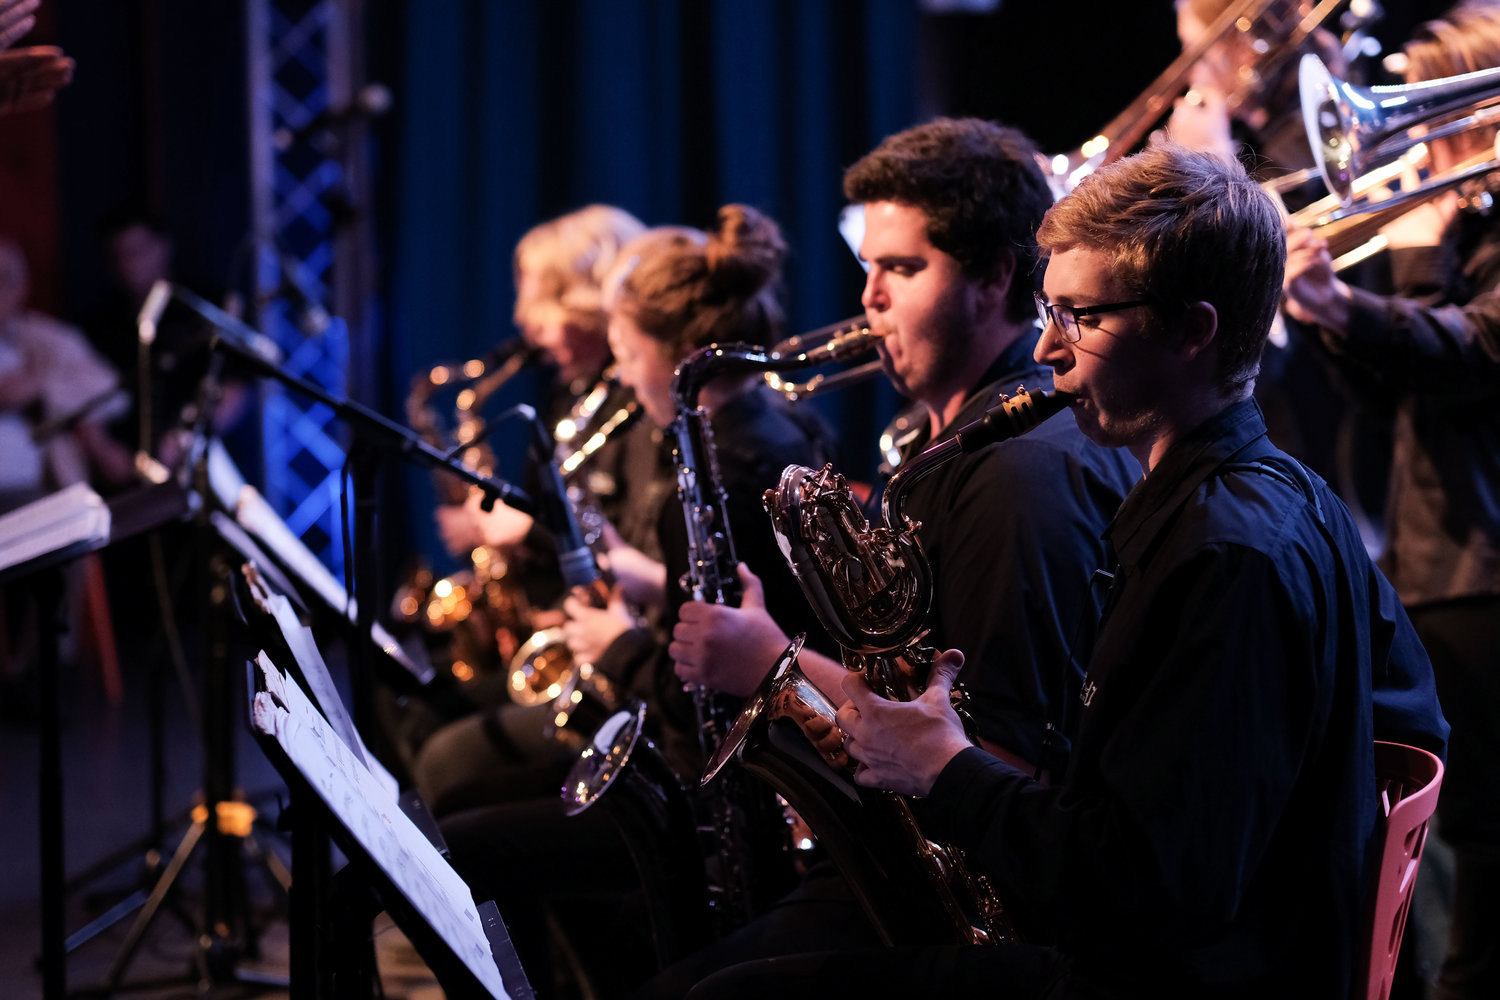 Wollongong Conservatorium All-Star Jazz Orchestra